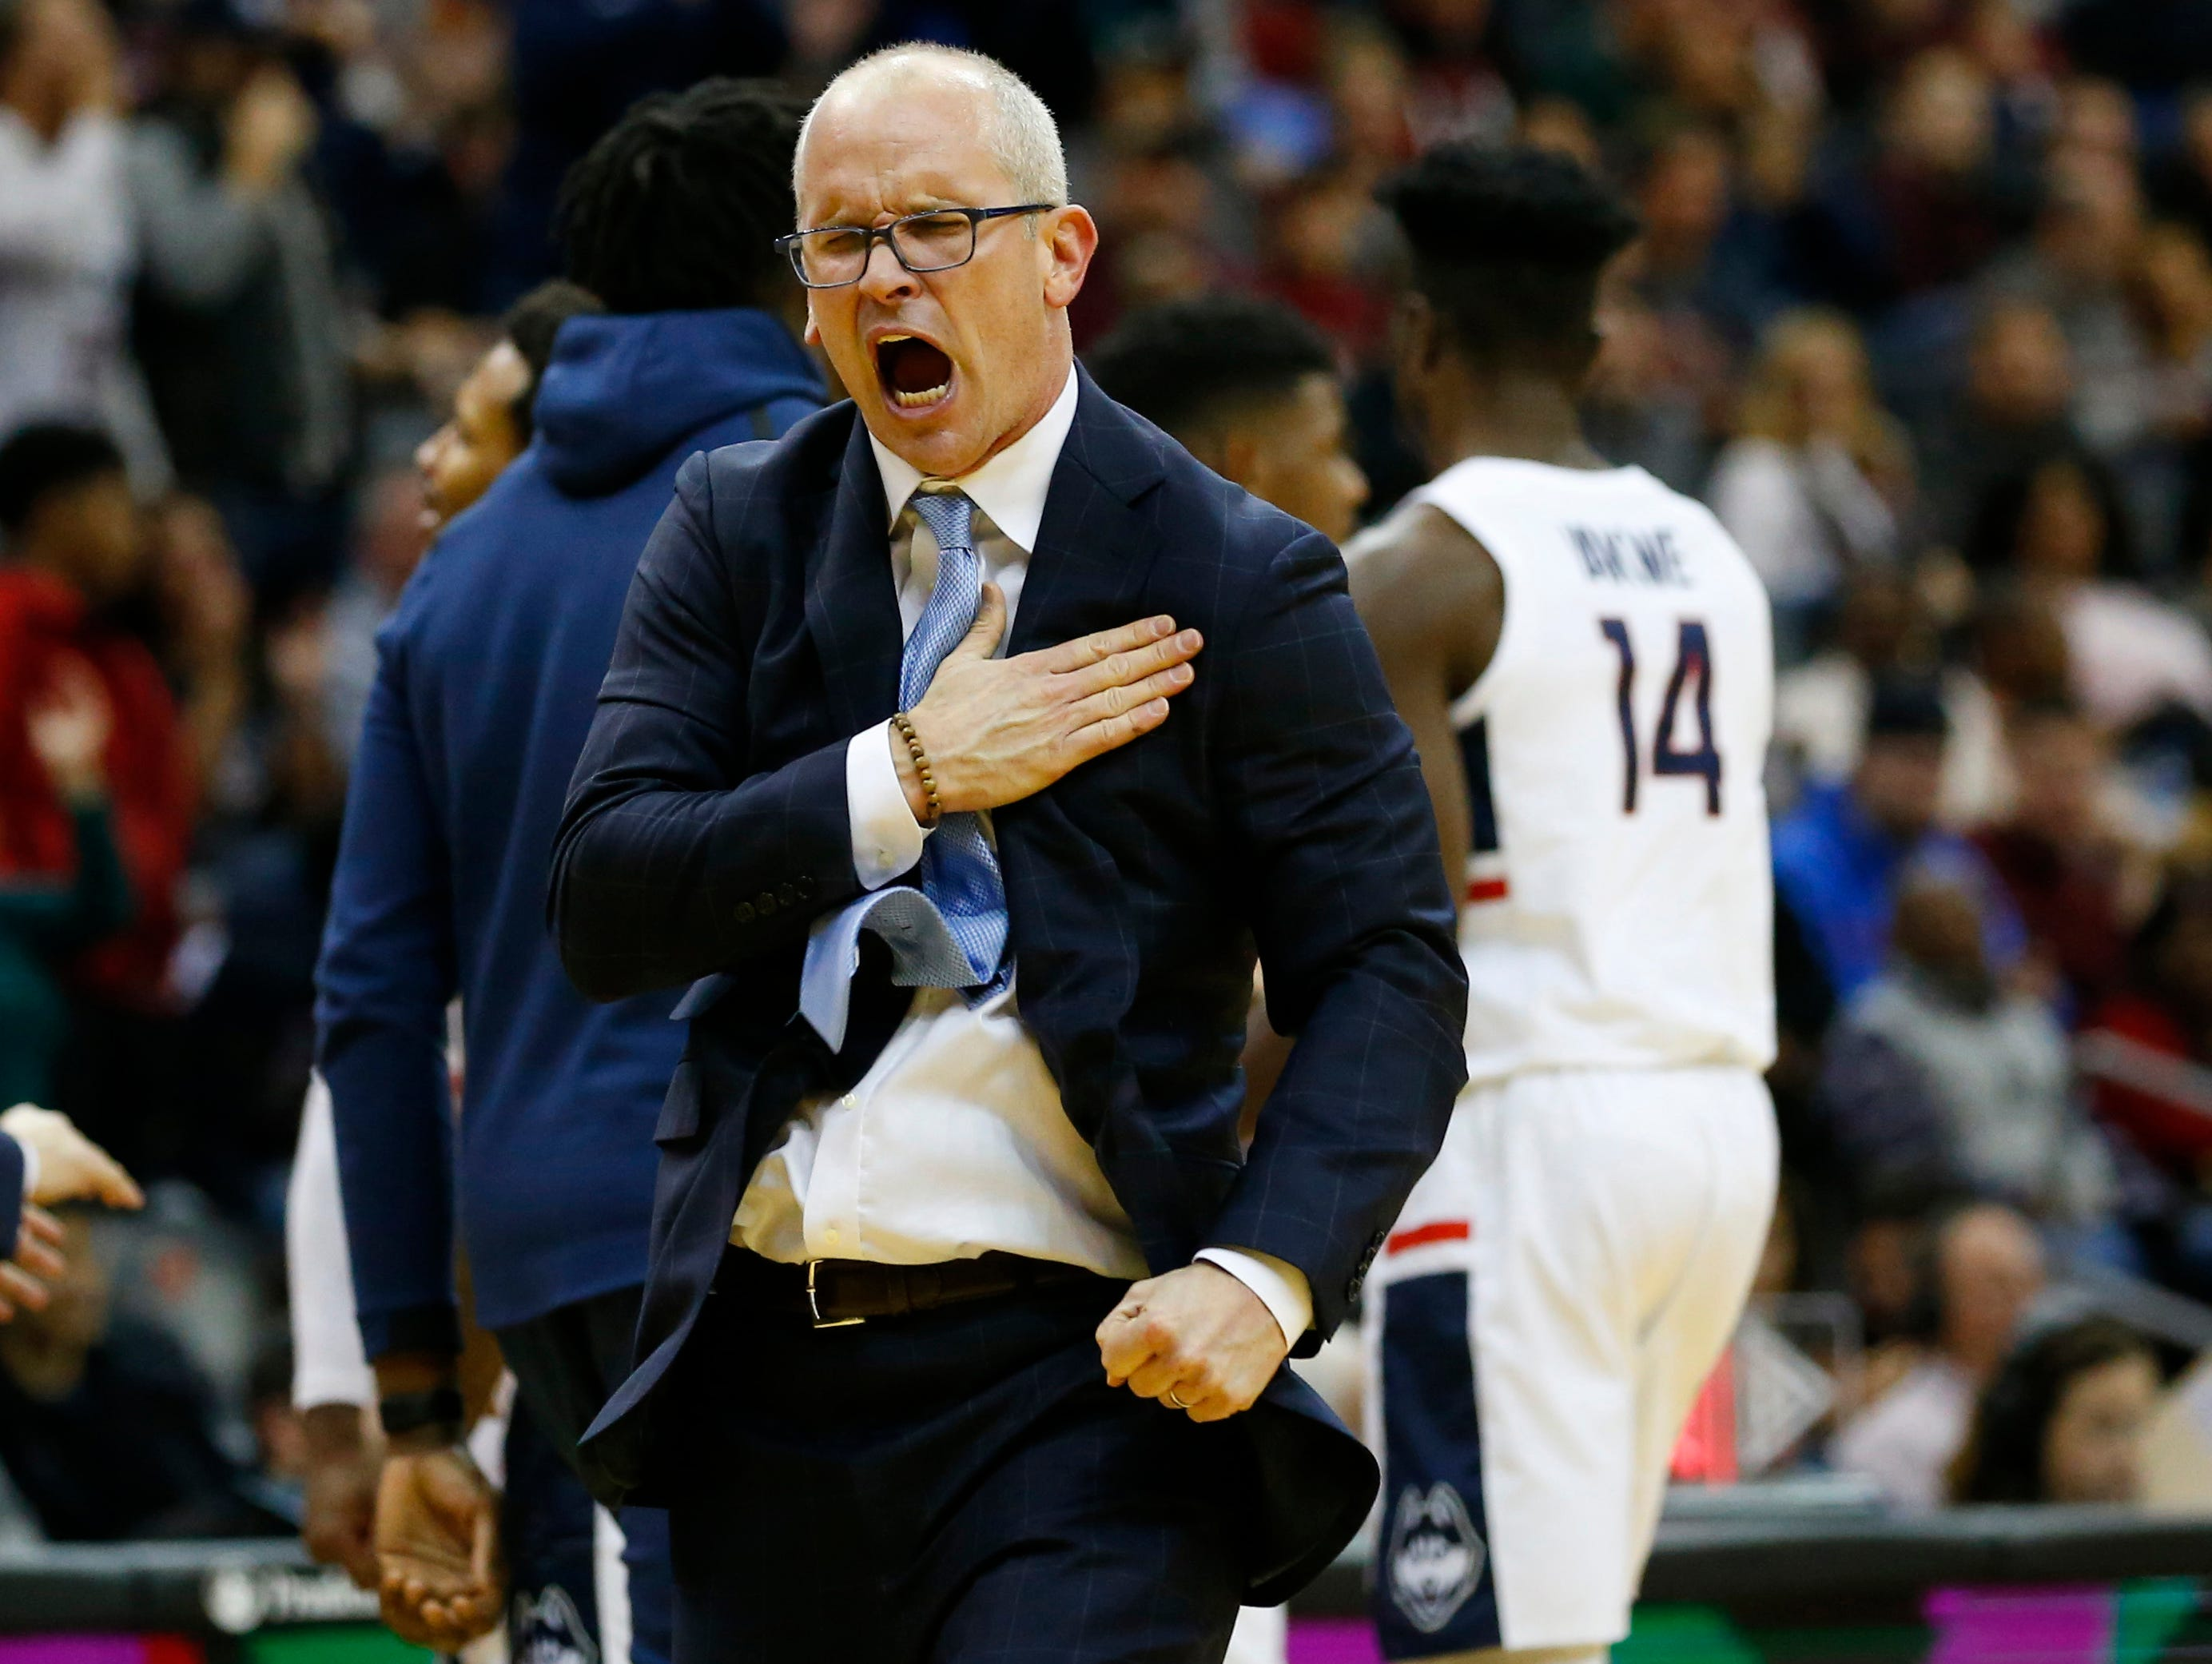 Dec 8, 2018; Newark, NJ, USA; Connecticut Huskies head coach Dan Hurley reacts after the Huskies scored against the Florida State Seminoles during the first half at Prudential Center. Mandatory Credit: Noah K. Murray-USA TODAY Sports